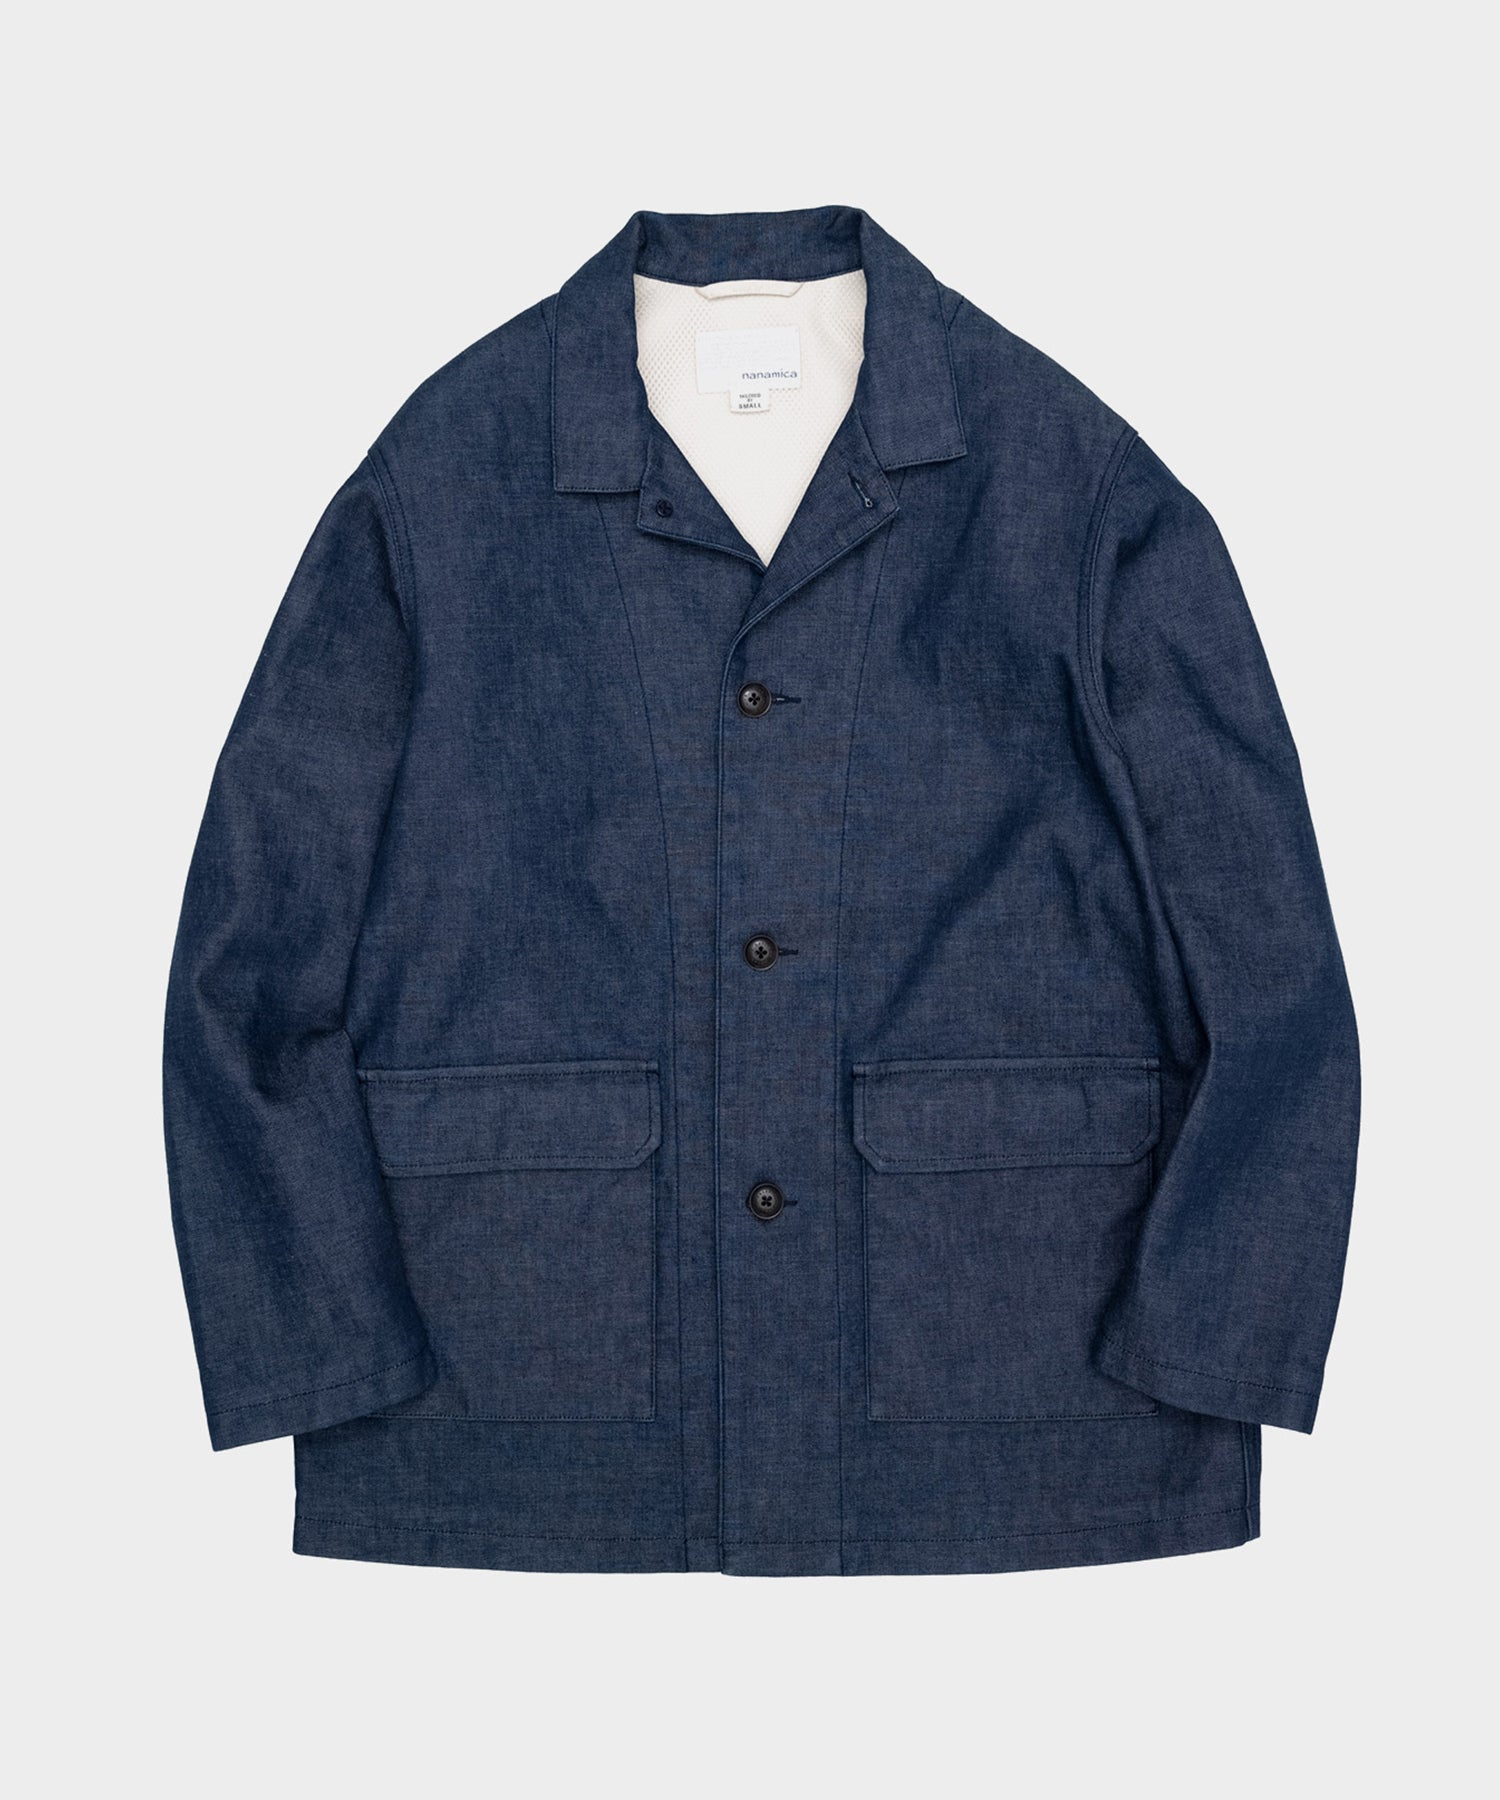 Nanamica Denim Field Jacket in Indigo